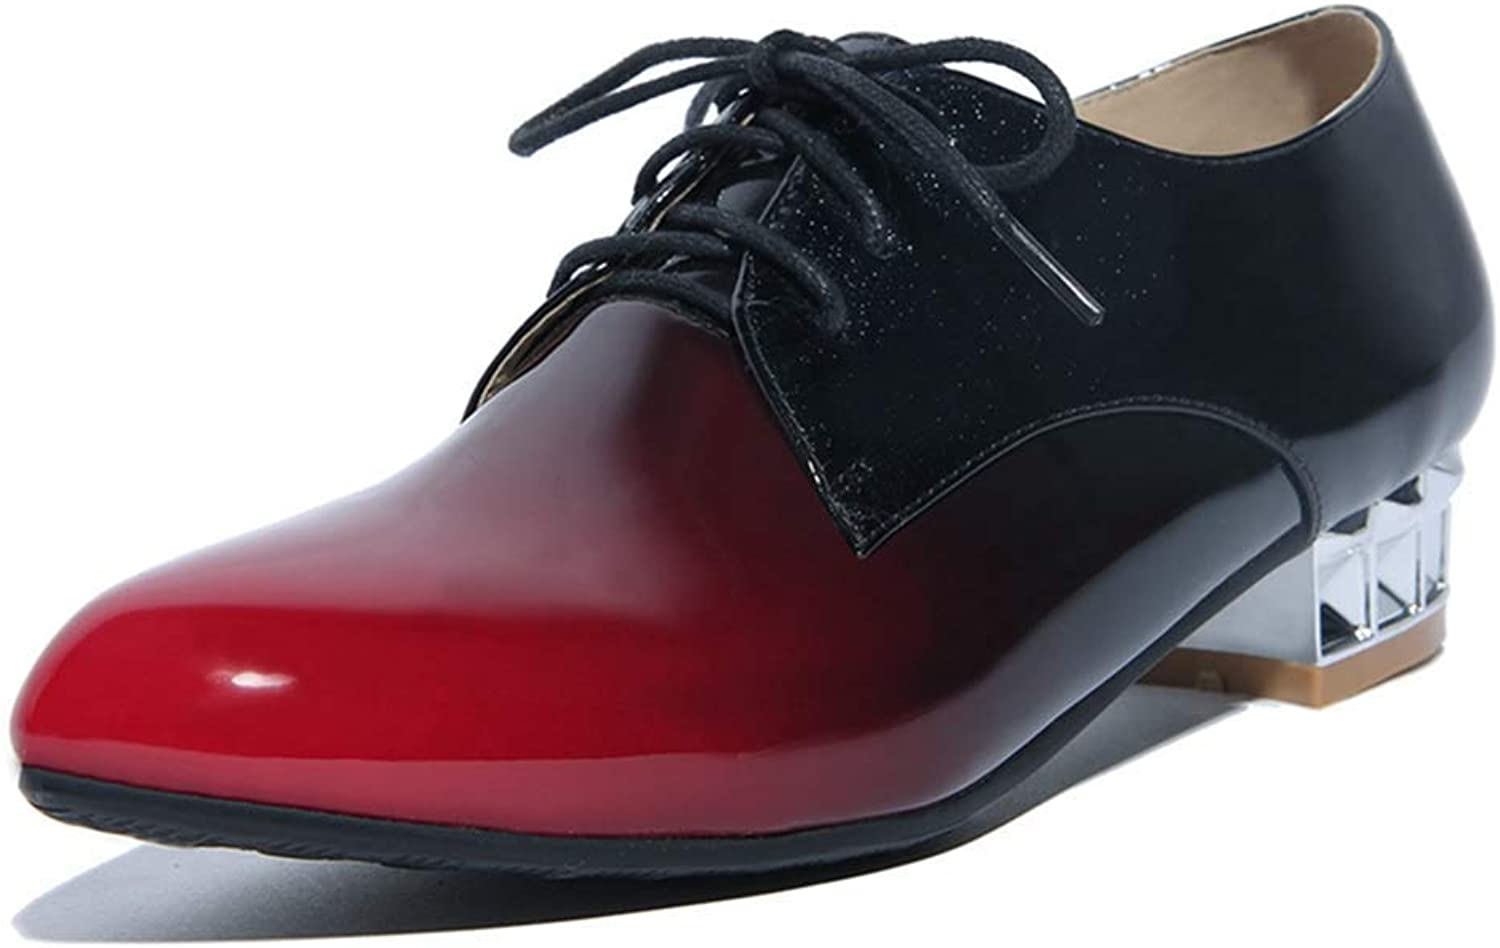 Fashion shoesbox Women's Two Tone Oxford shoes Plaid Leather Lace Up Low Heel Pointed Toe Dress Oxfords Loafer shoes